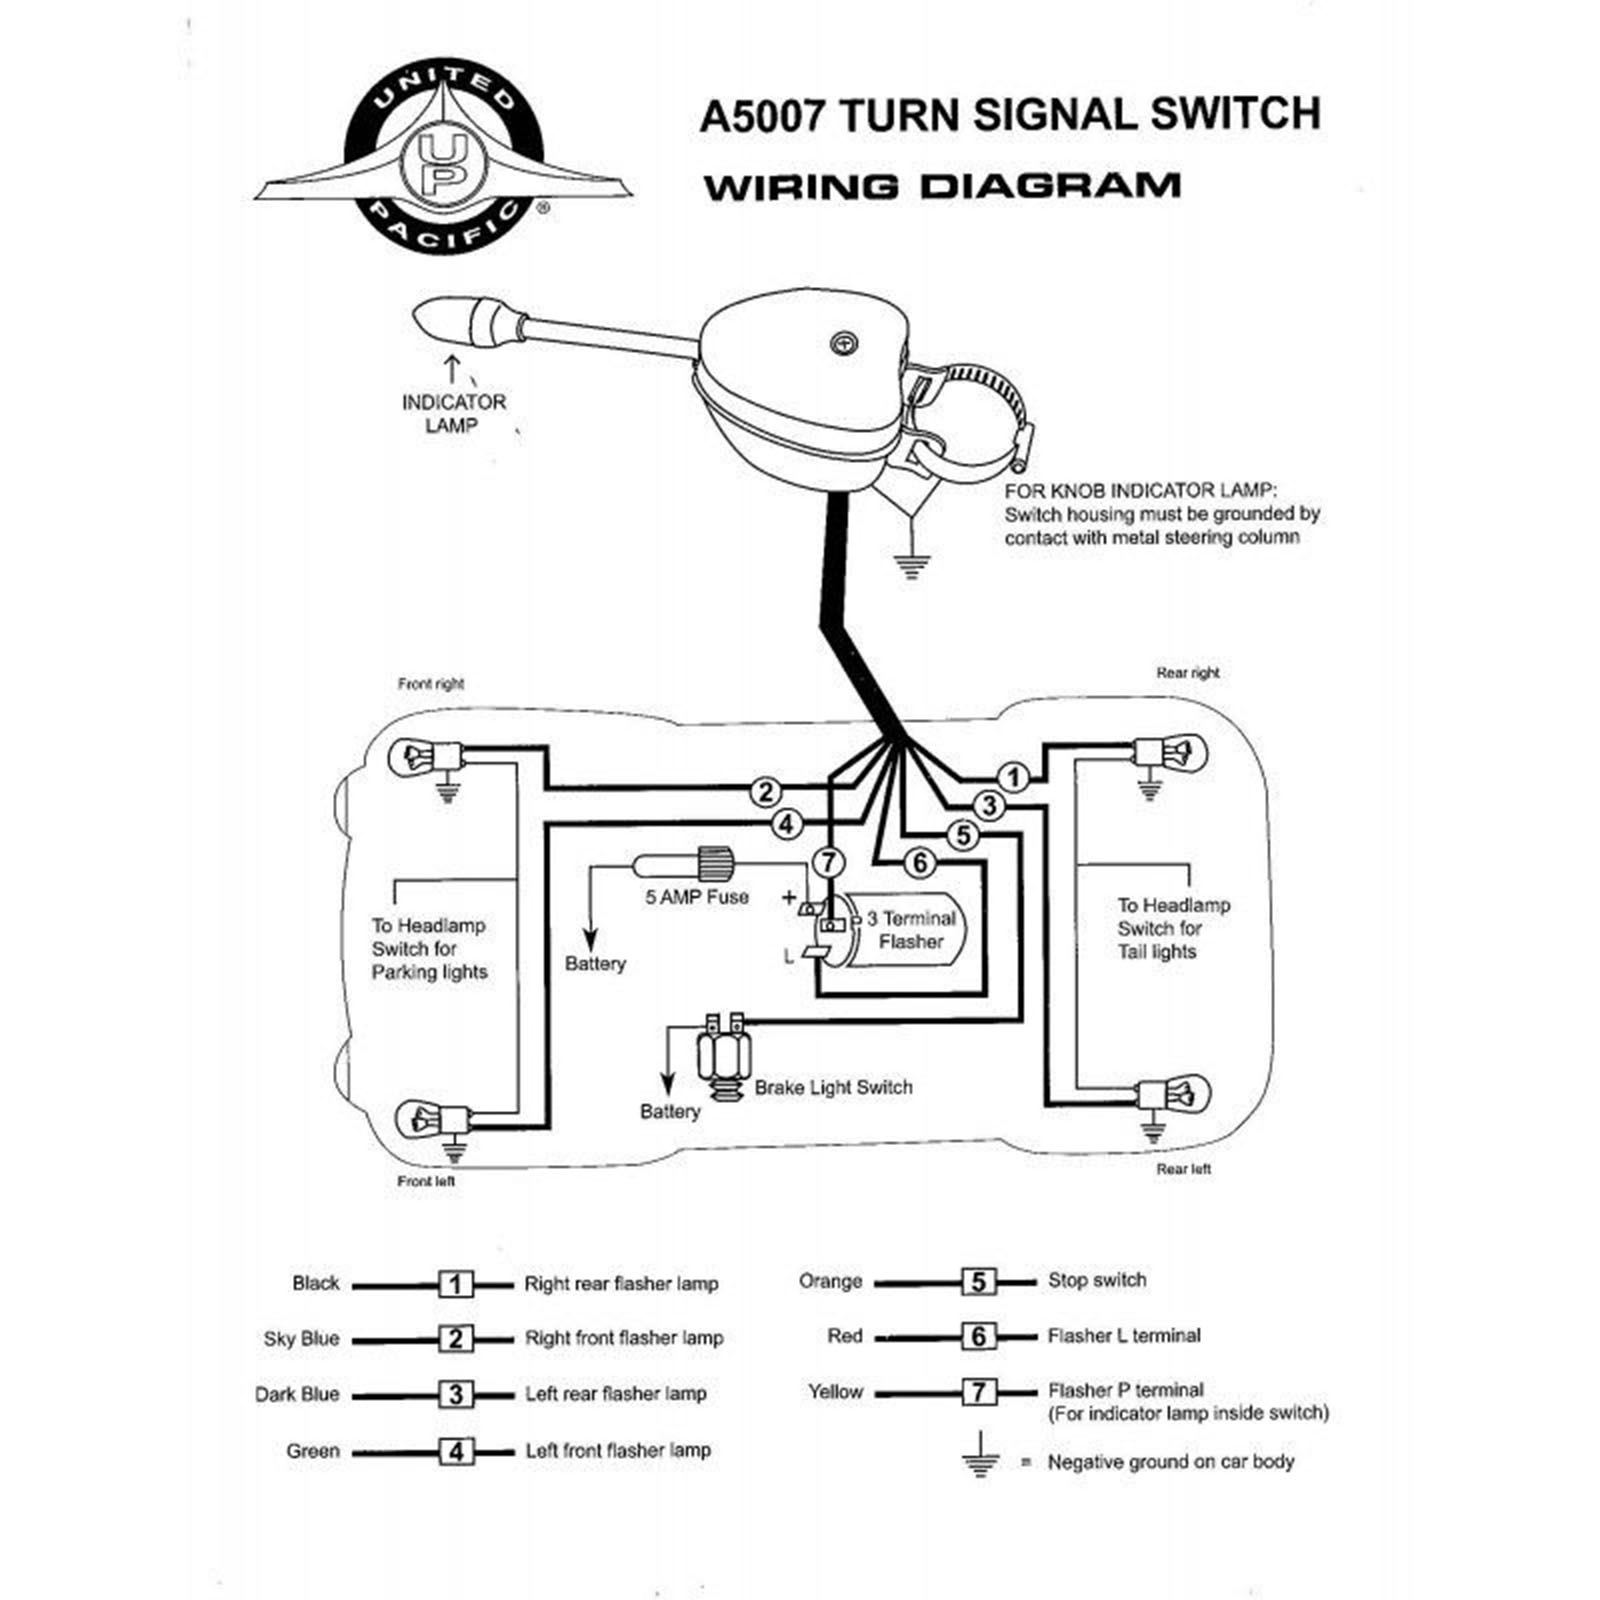 signal stat 900 sigflare wiring diagram 12 volt chrome steel turn signal flasher switch steering column  chrome steel turn signal flasher switch